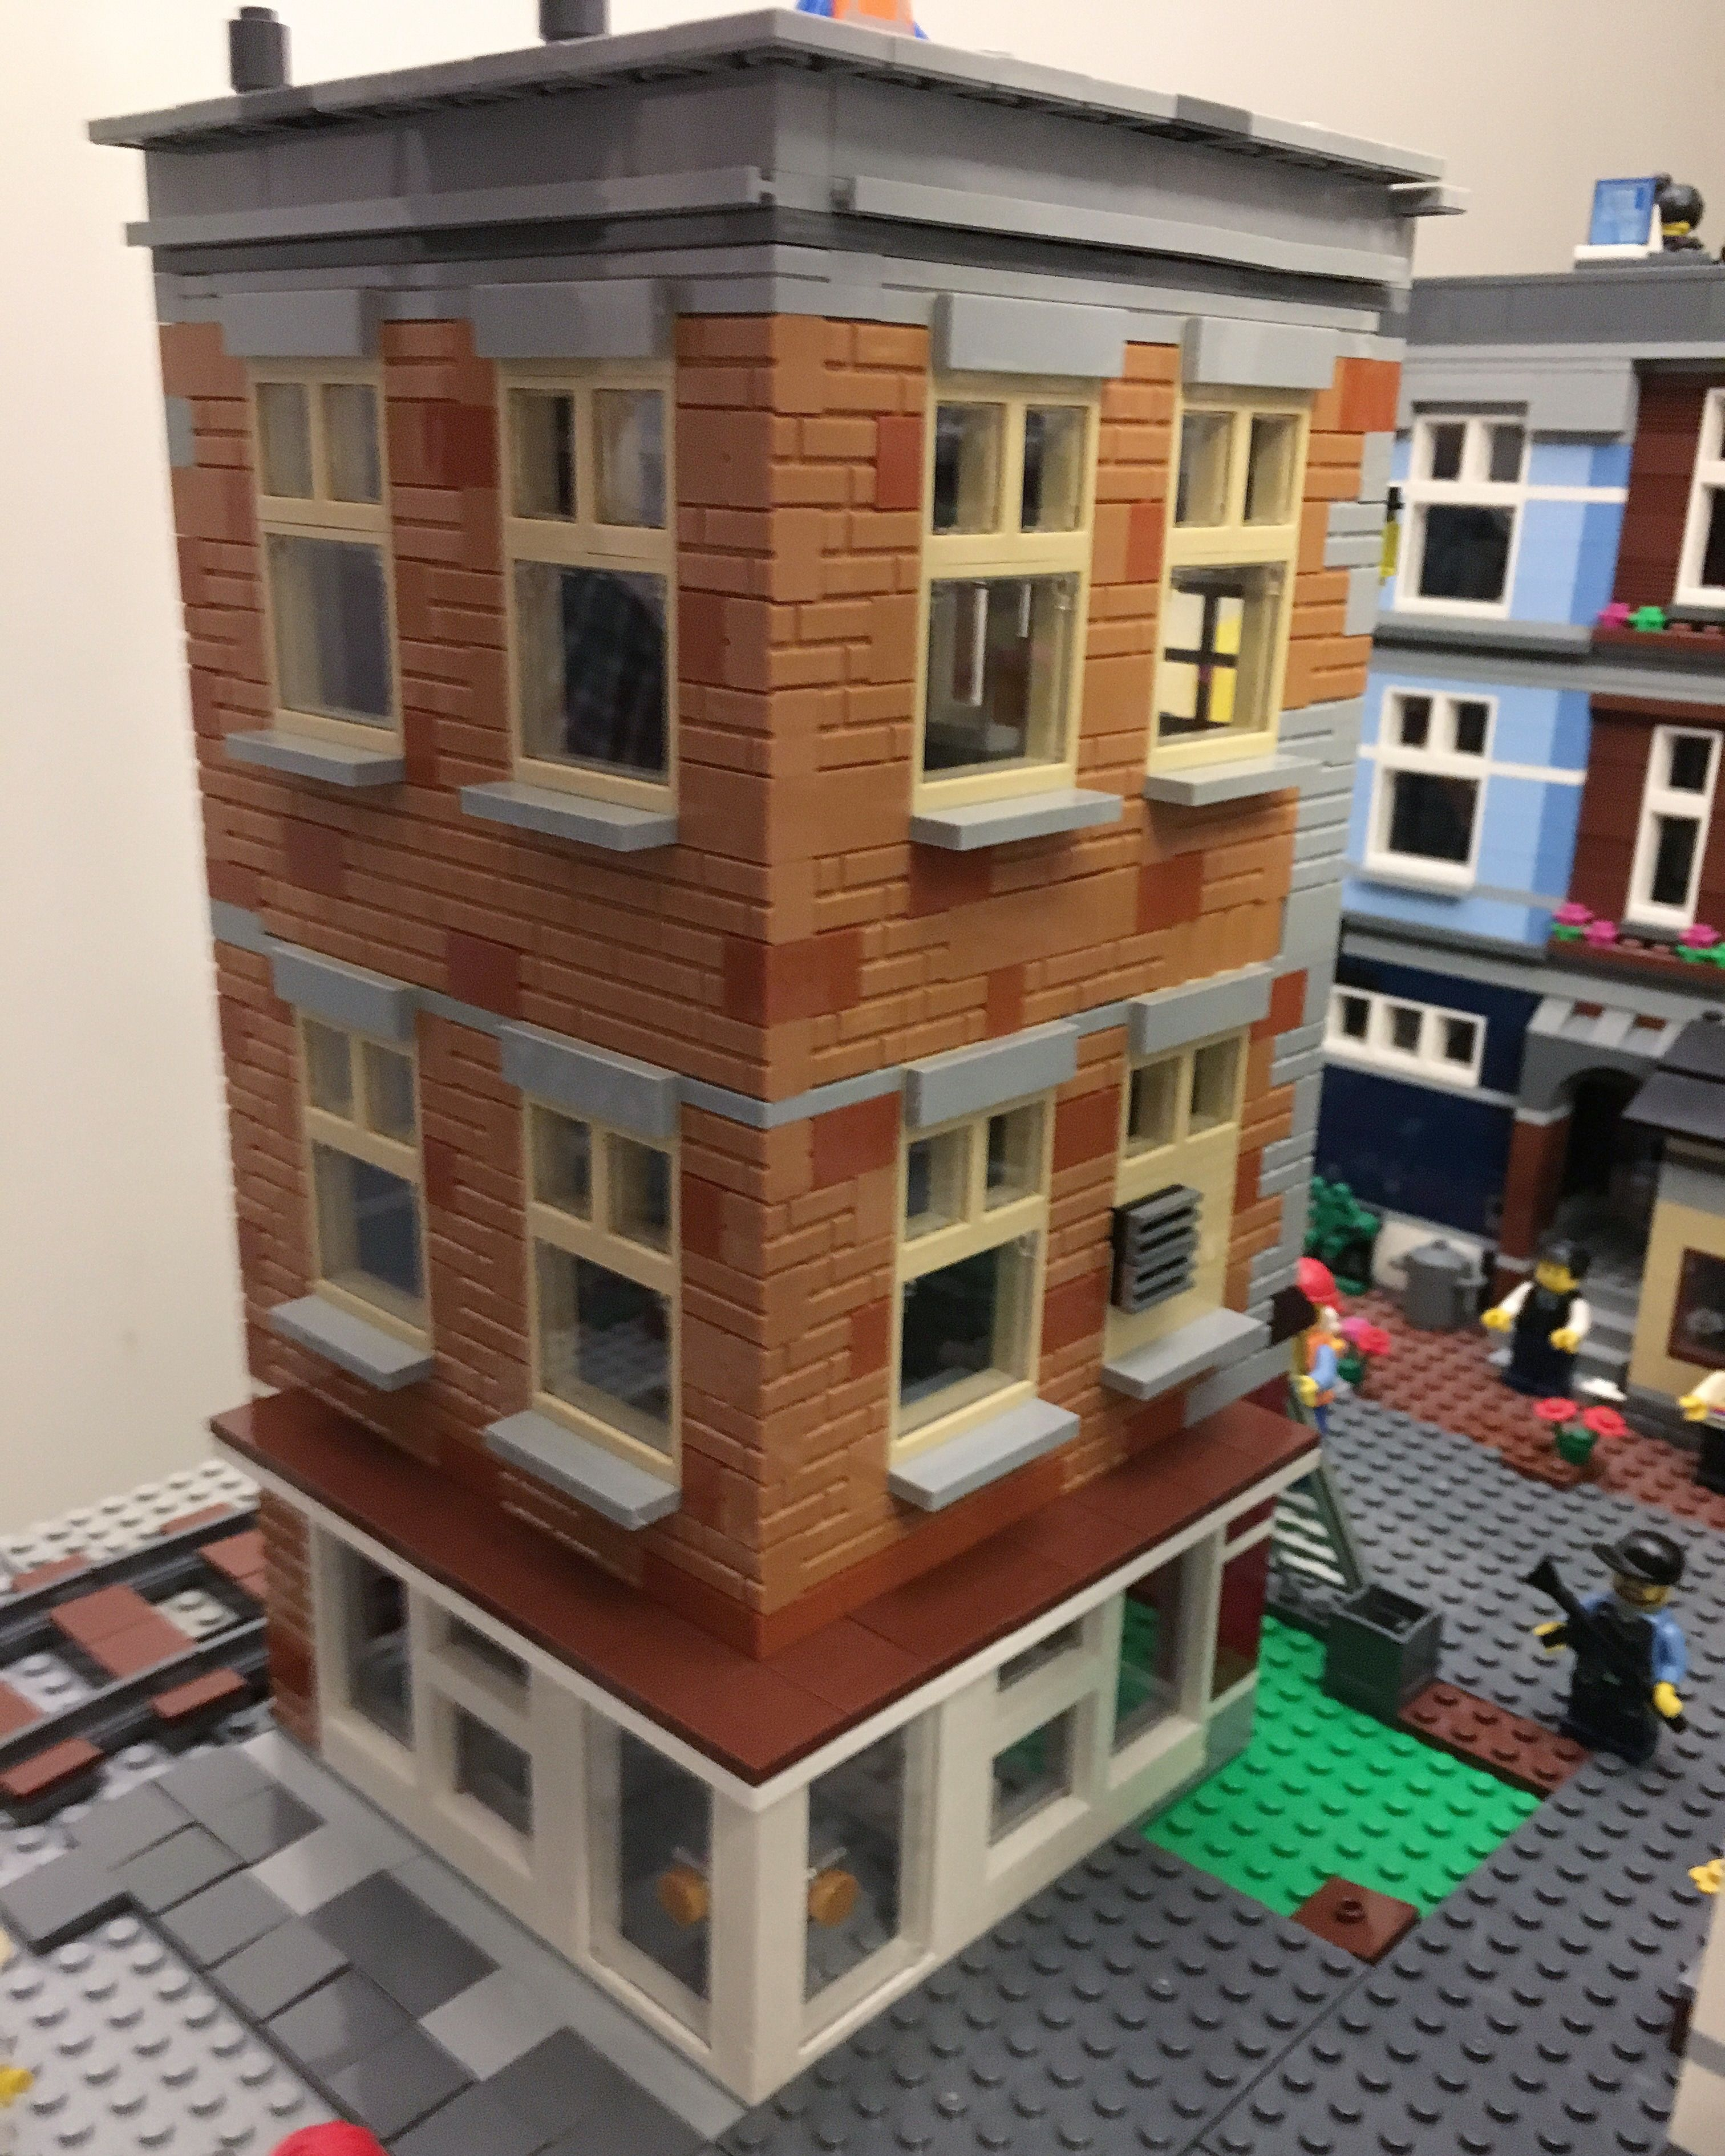 My Own Lego Apartment Building With A Sushi Restaurant Legomoc Legocity House Afol Svenglego Modular New York